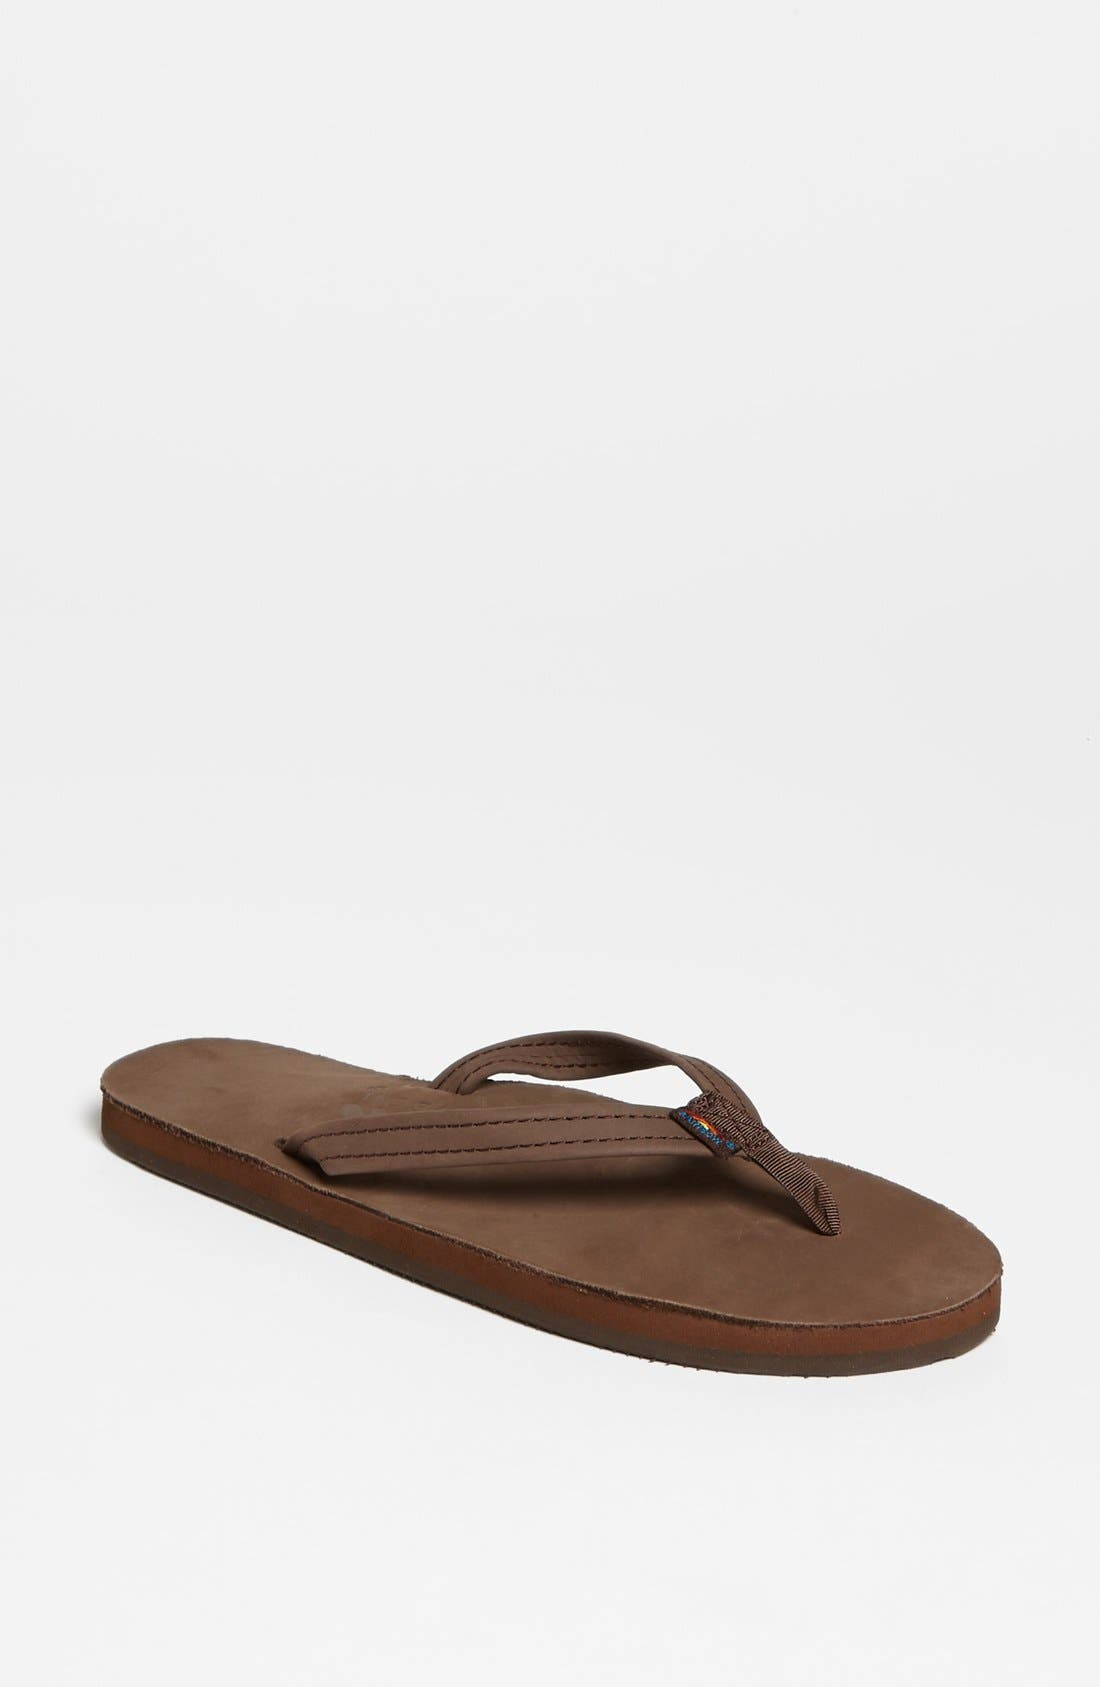 Narrow Strap Sandal,                             Main thumbnail 1, color,                             Expresso